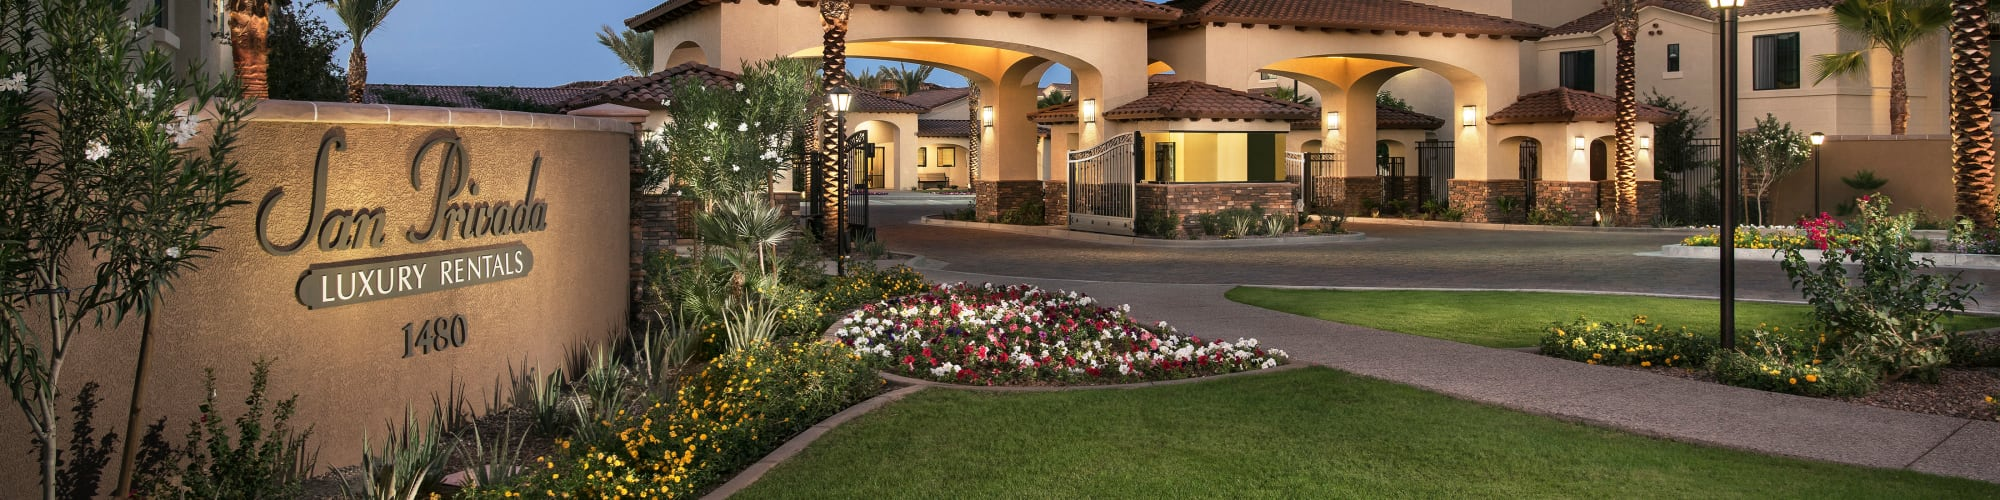 Contact us at San Privada in Gilbert, Arizona